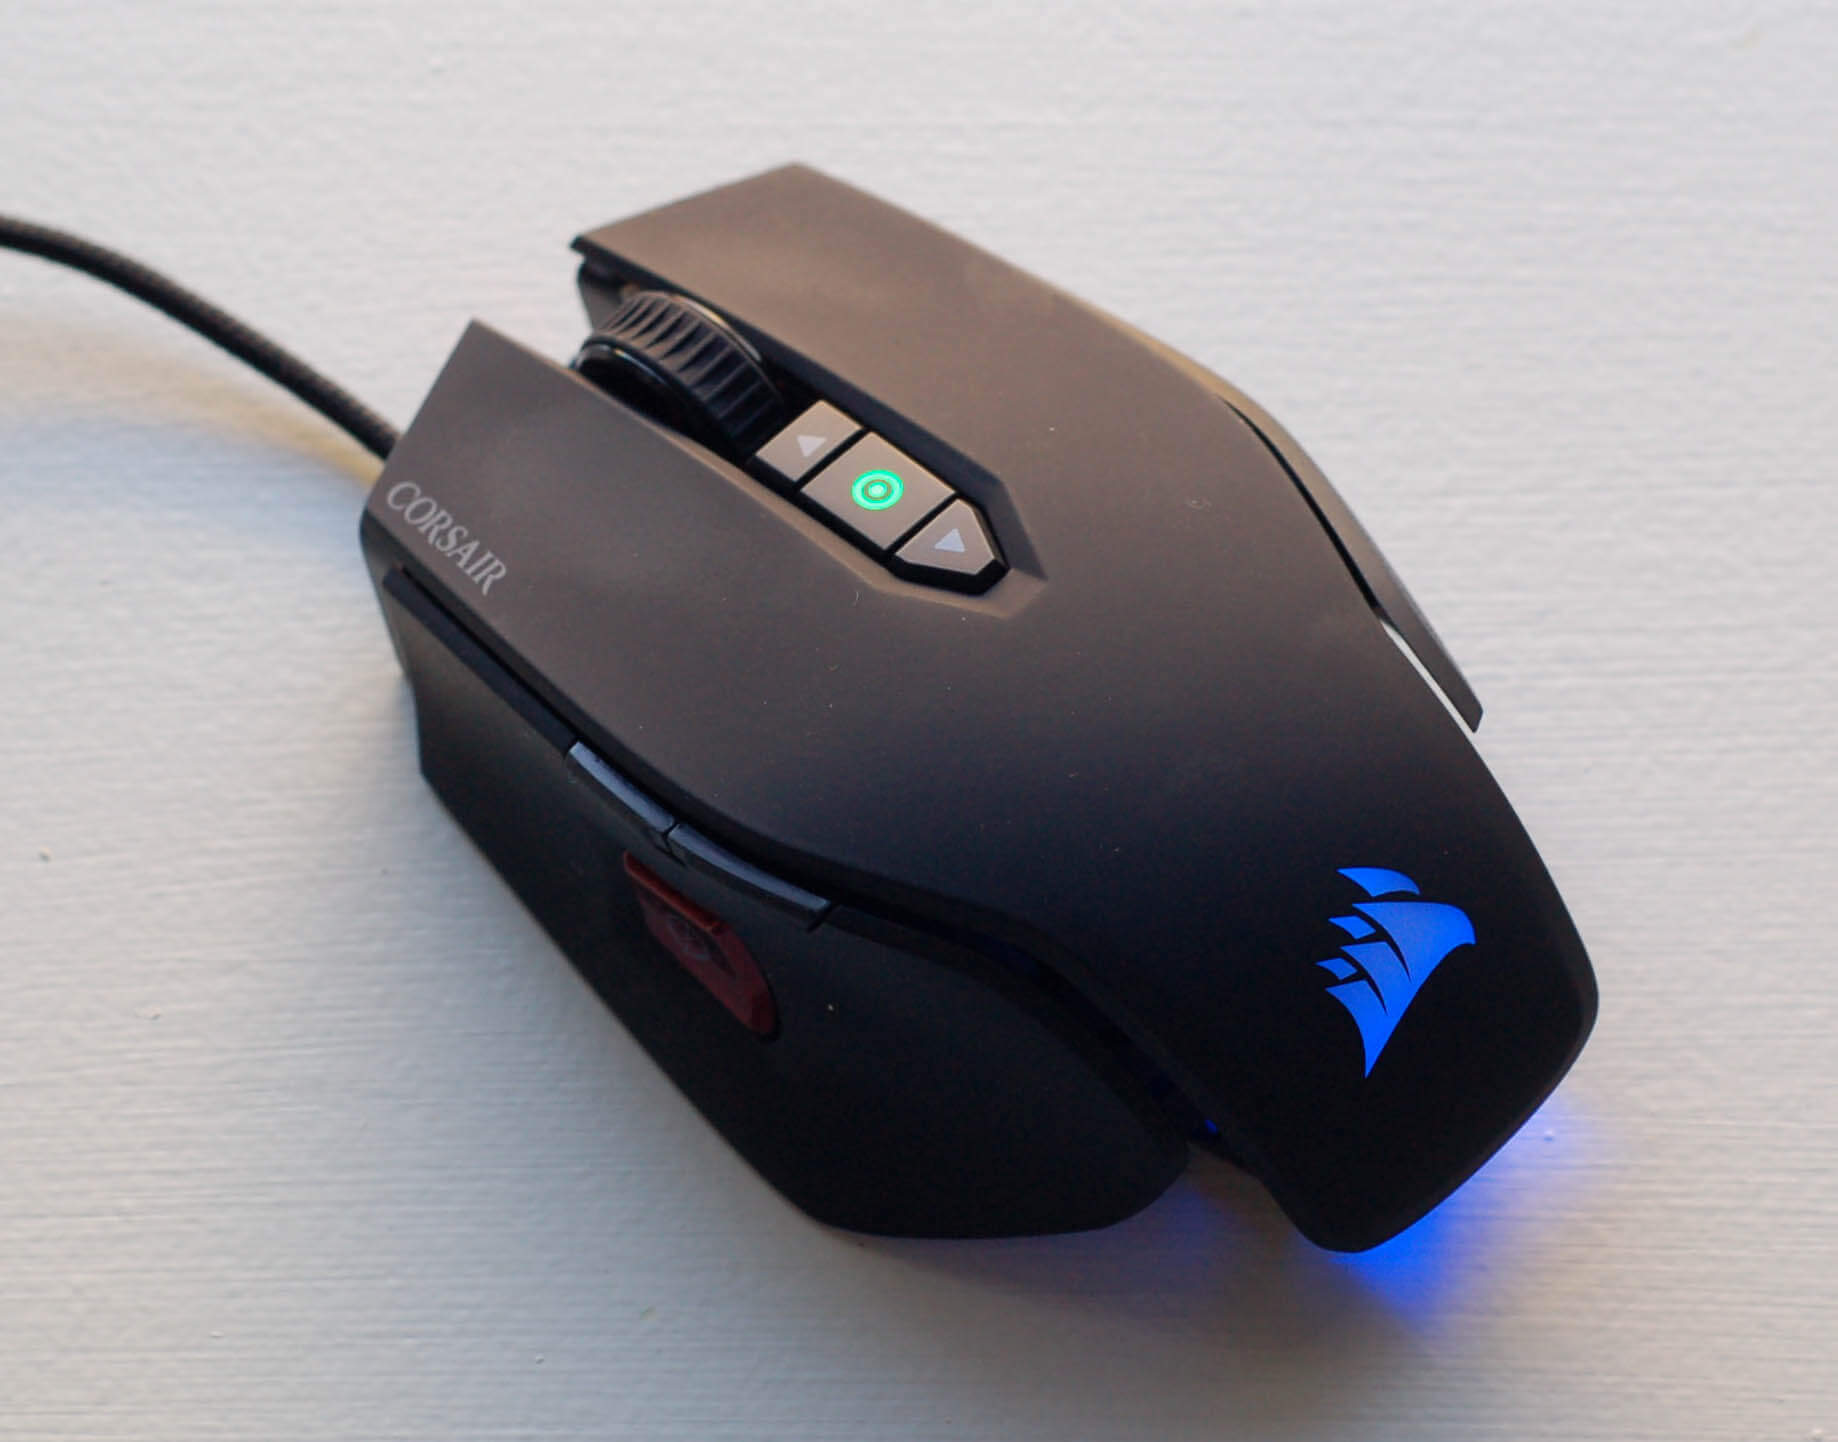 Corsair M65 Pro Review introduction